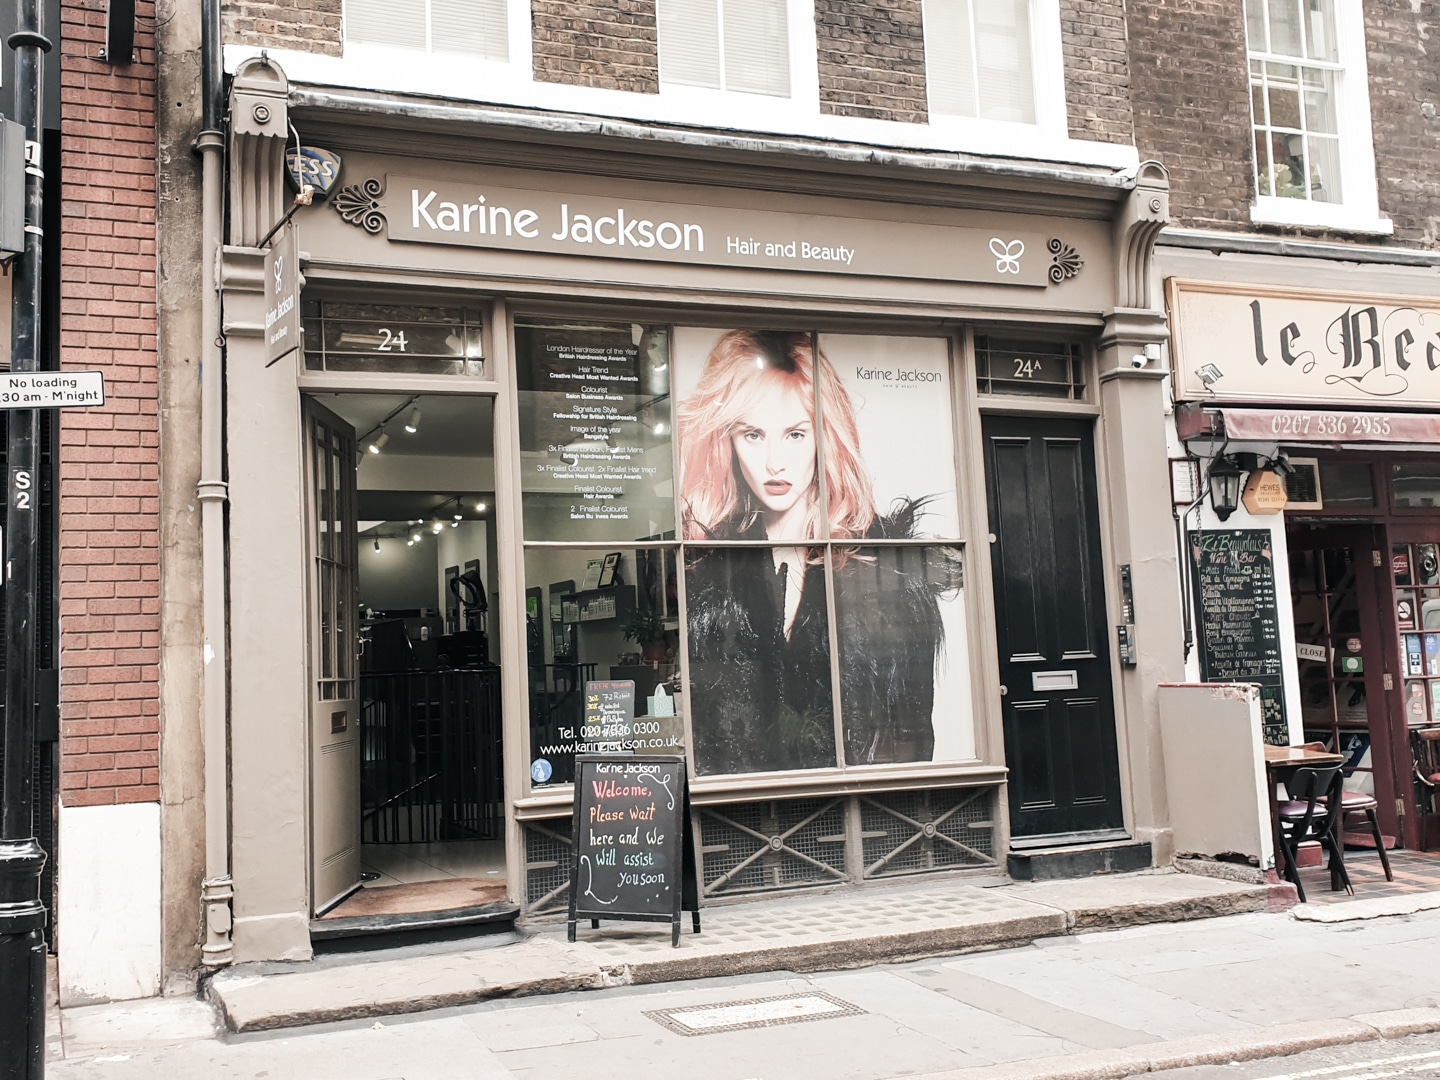 Exterior of Karine Jackson salon